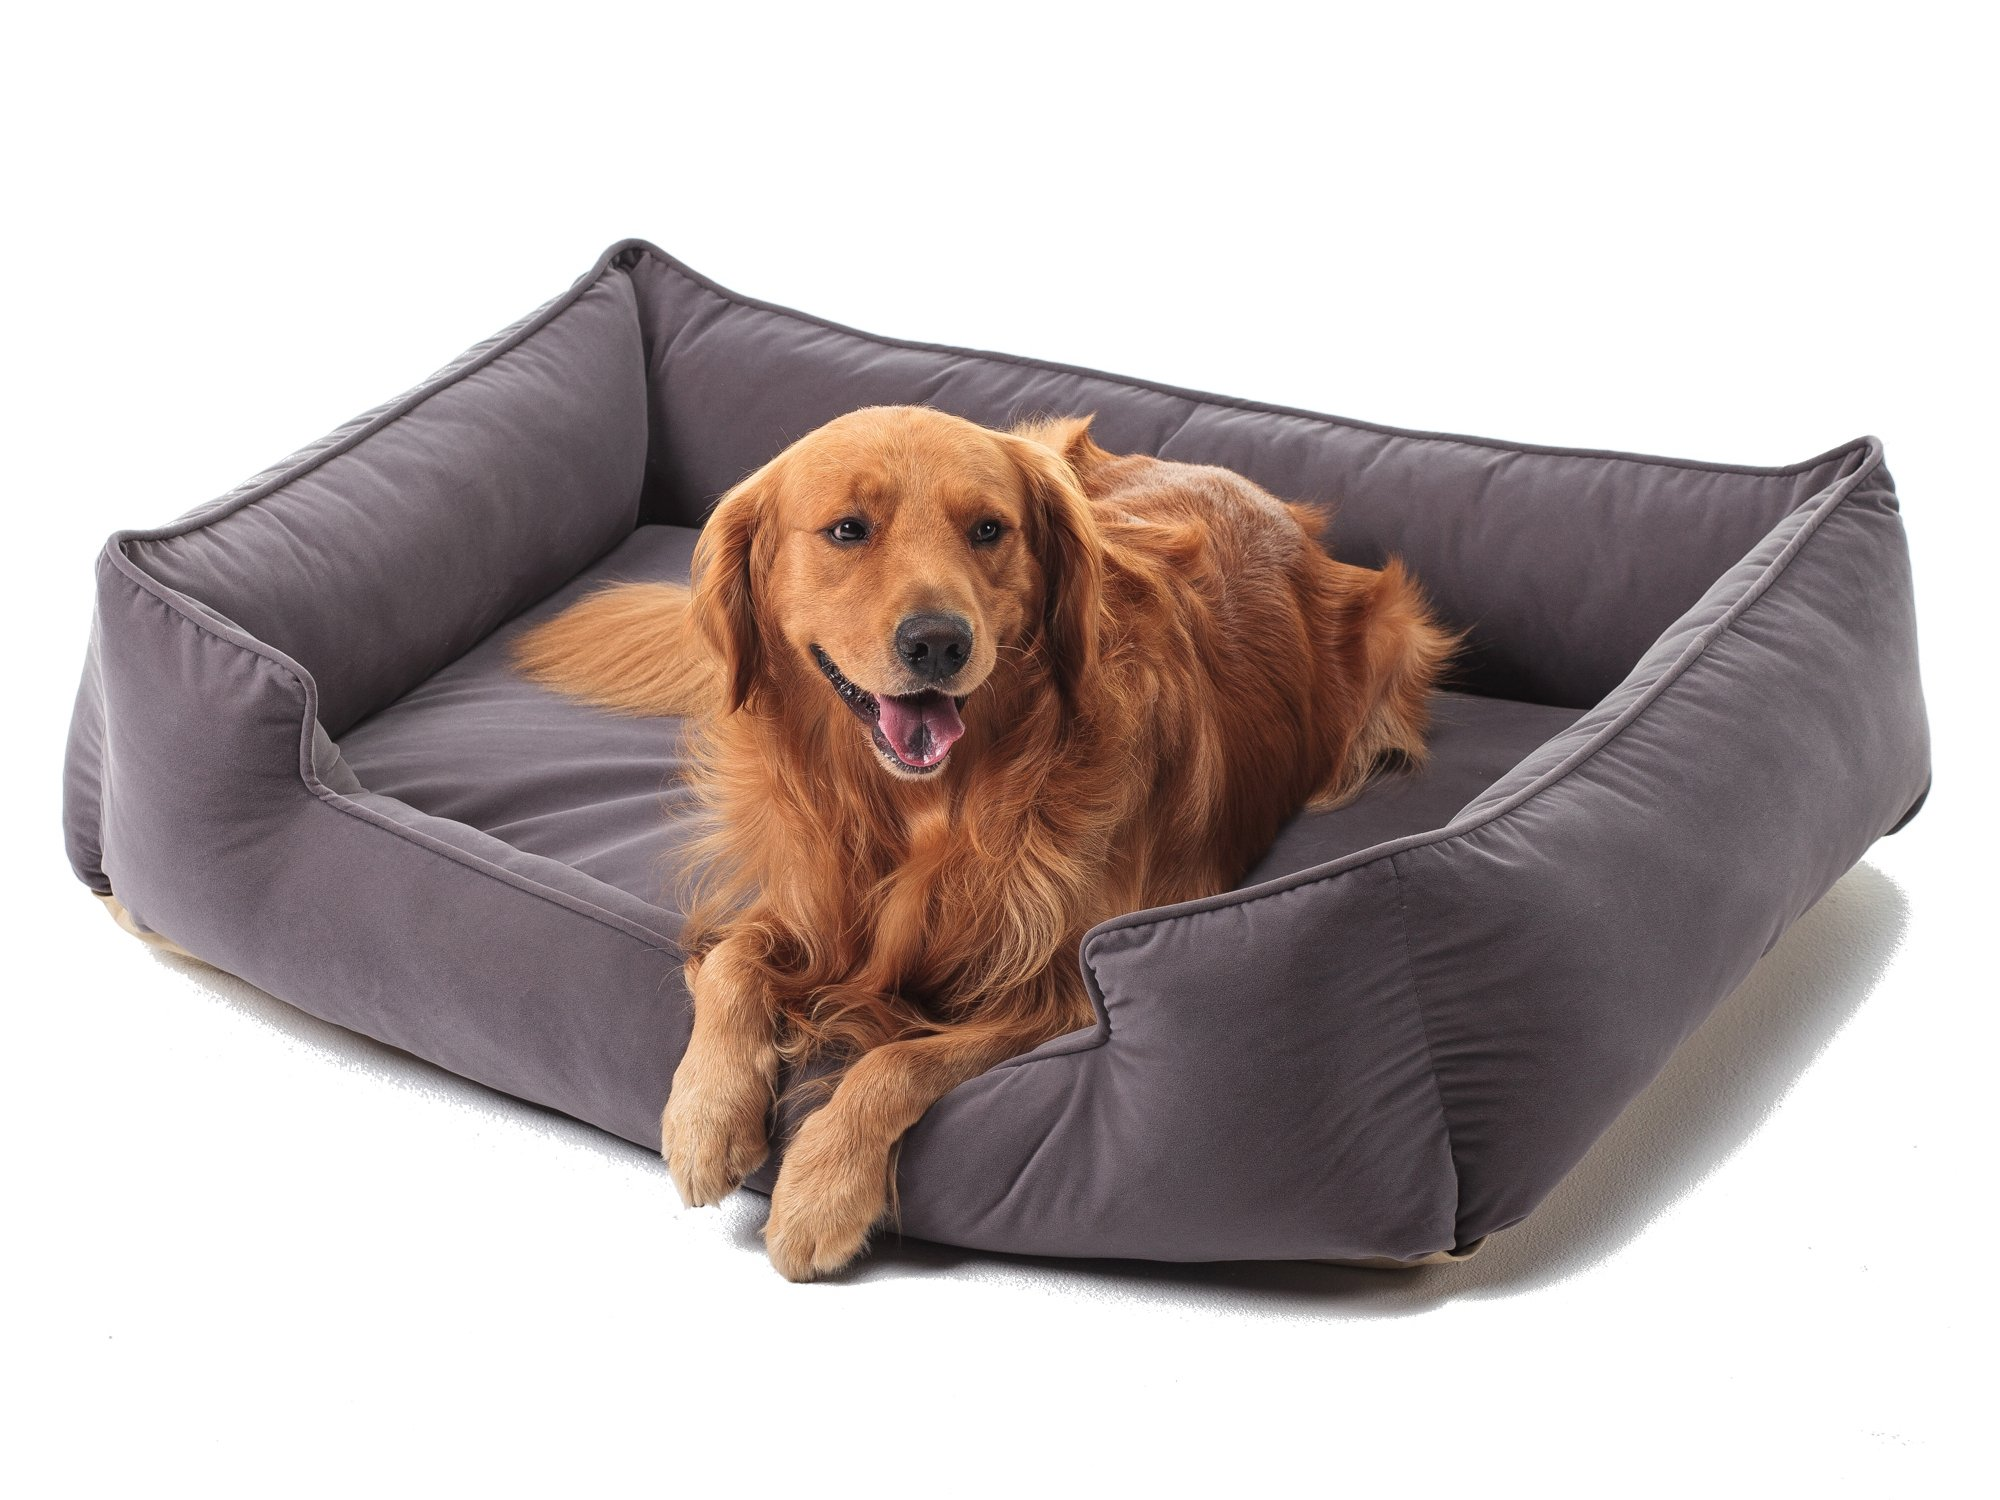 Petsbao Premium Dog Bed with 4'' Solid Memory Foam | Waterproof Liner | Cover Washable & Removable (Large 39 x 30.5 x 9.8 inch, Gray) by Petsbao (Image #1)